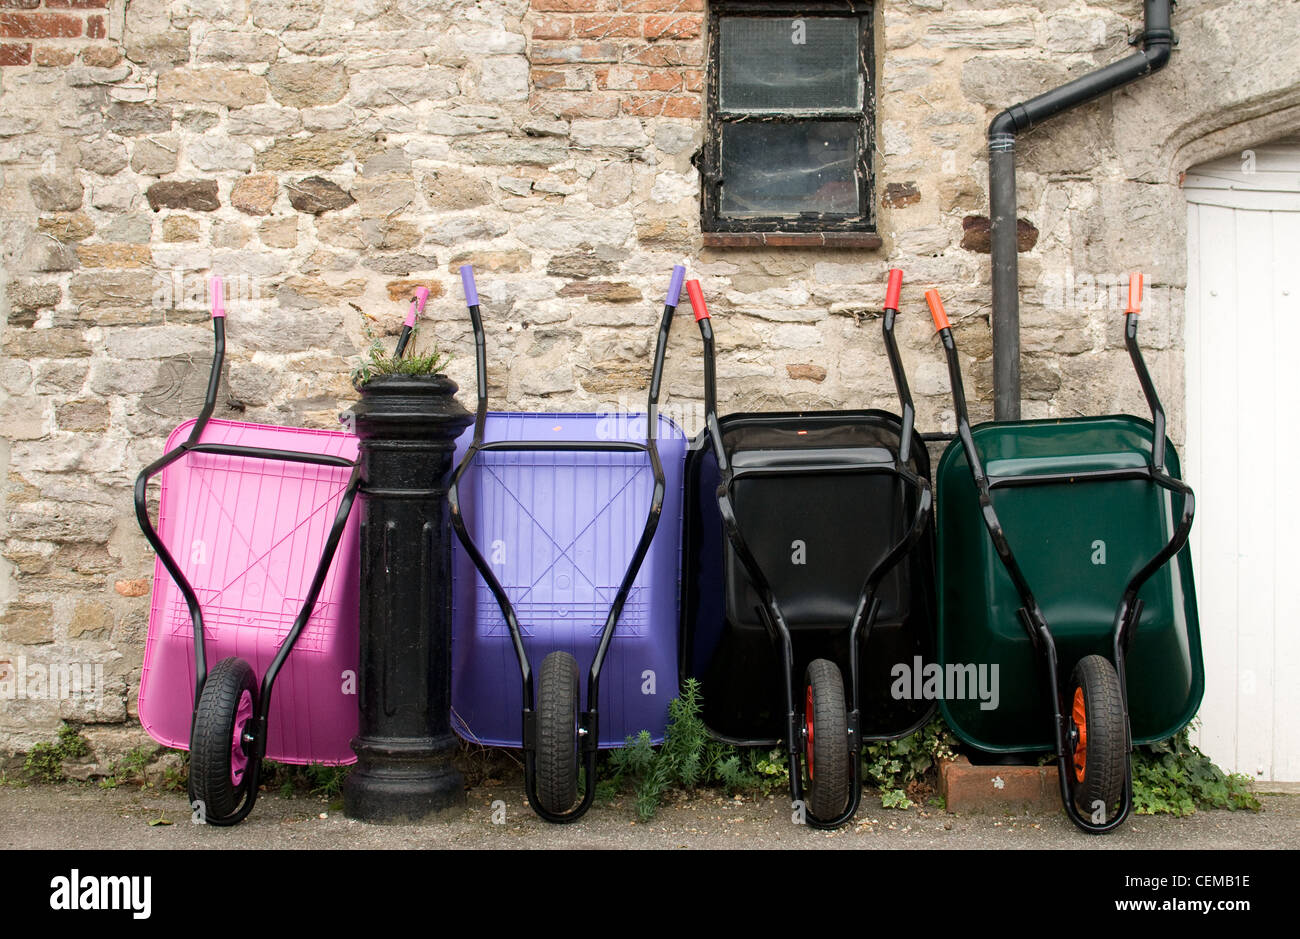 A row of colourful wheelbarrows for sale - Stock Image